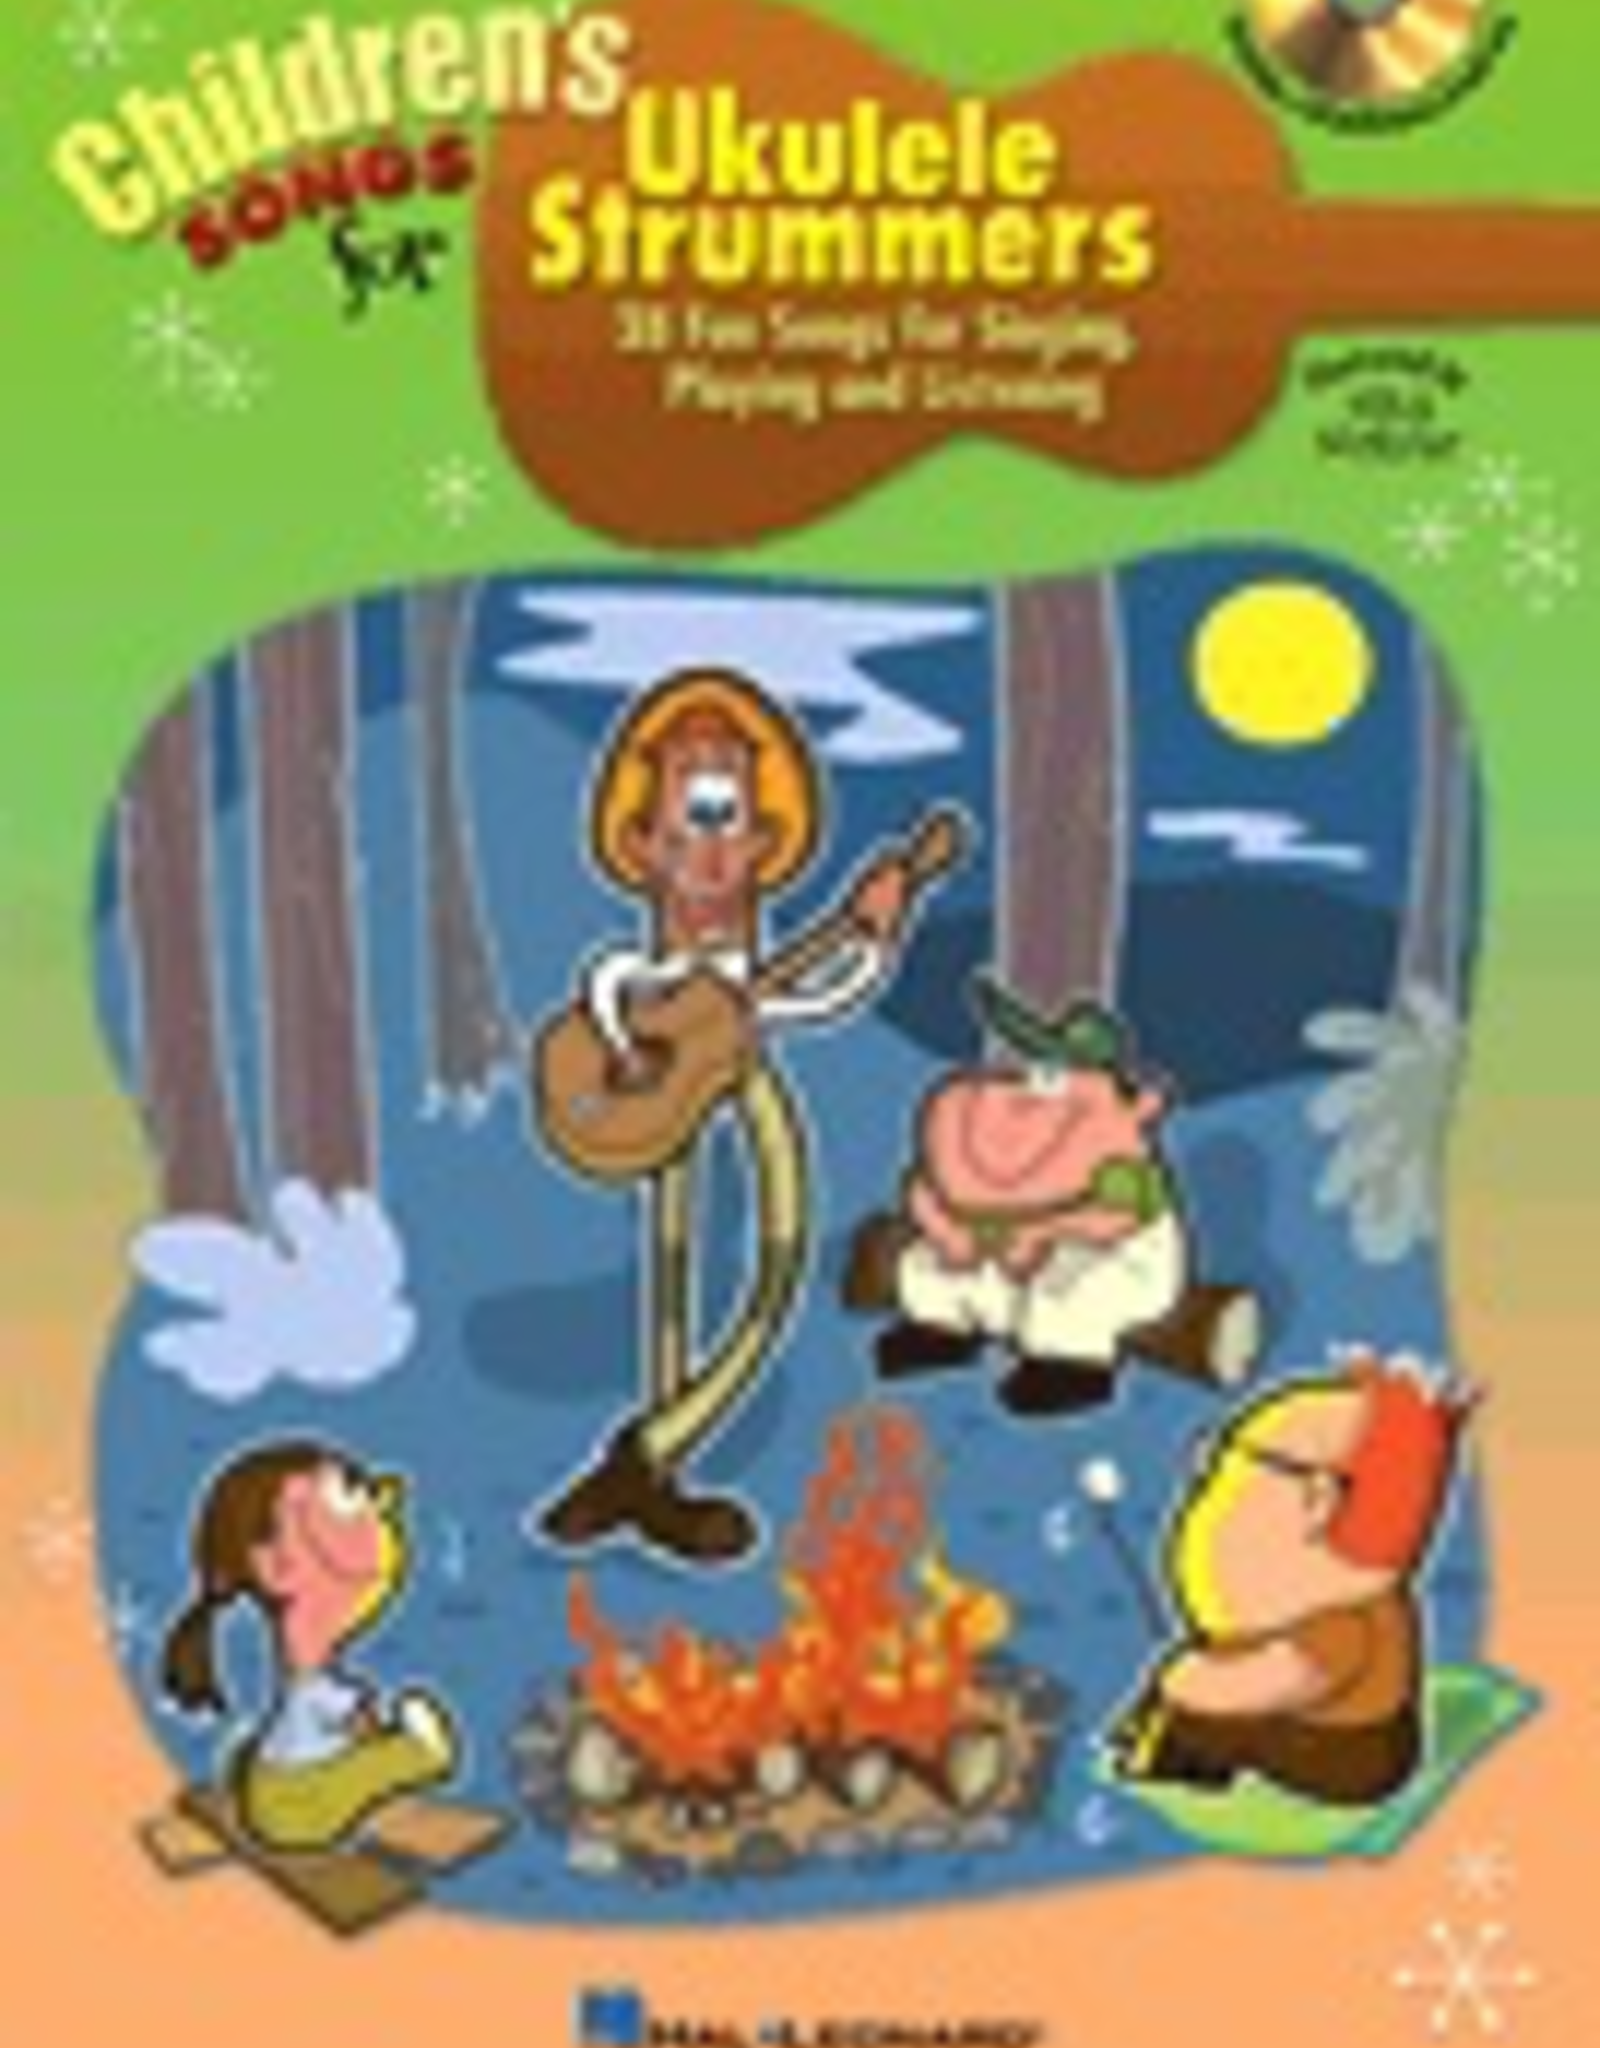 Hal Leonard Children's Songs for Ukulele Strummers